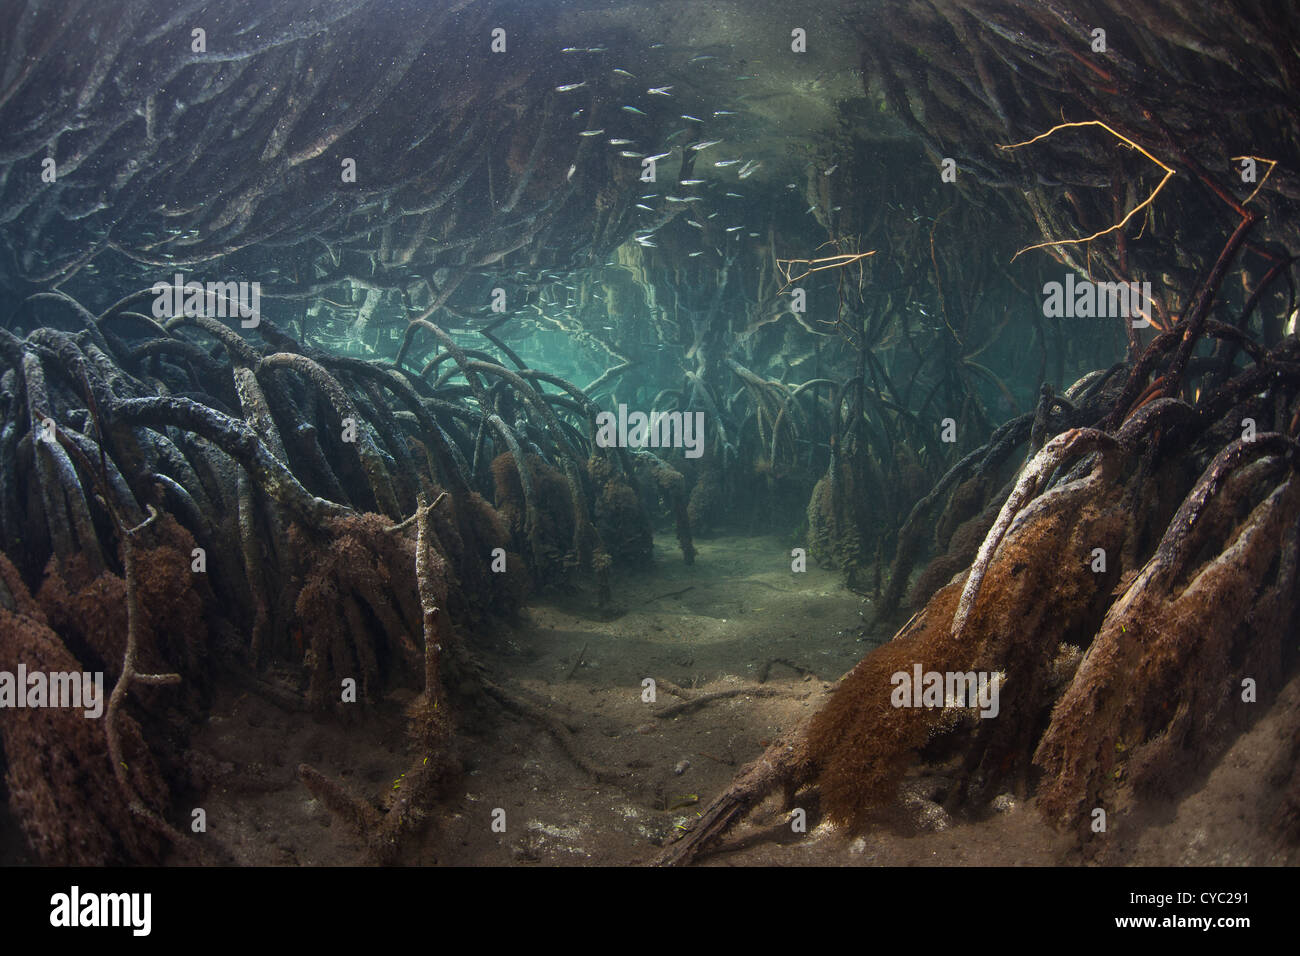 Prop roots from red mangrove trees, Rhizophora sp., curve downward into the soft soil of a remote mangrove forest - Stock Image